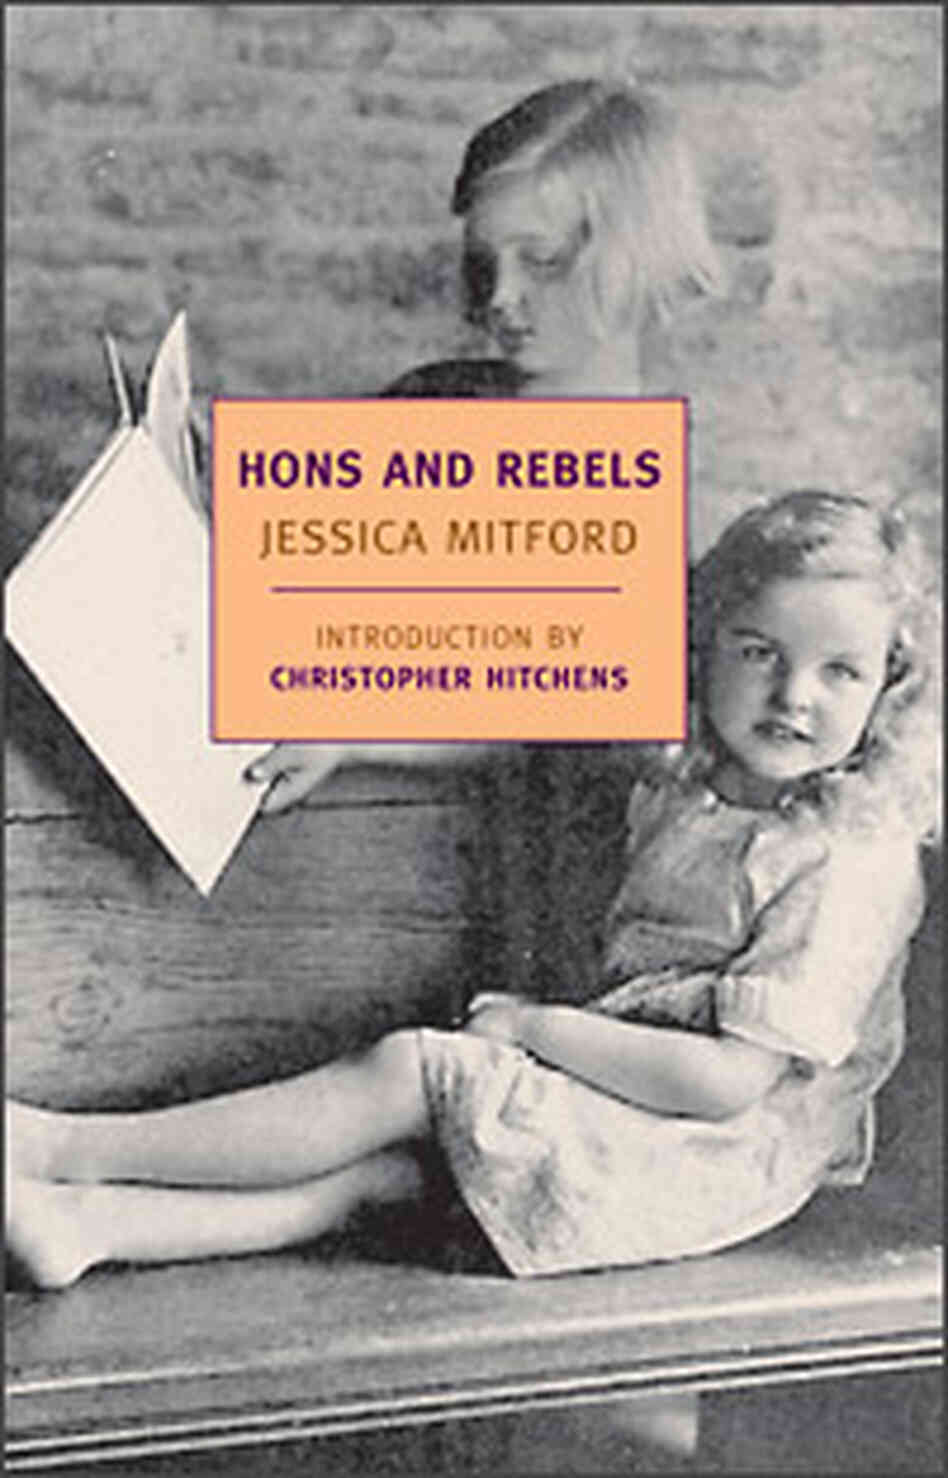 The cover of 'Hons and Rebels.' Credit: New York Review Books.